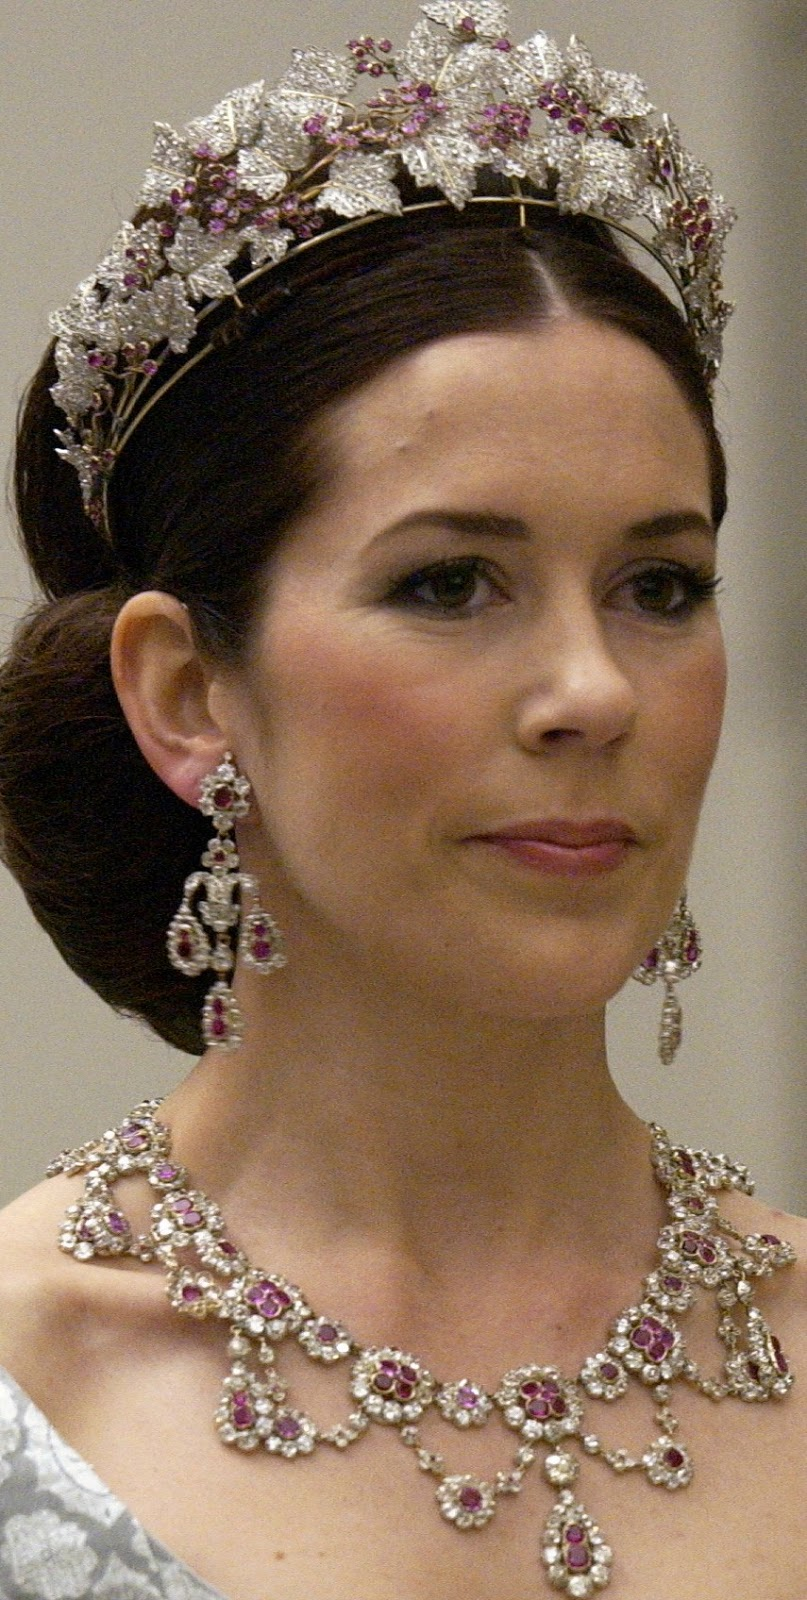 Royal bling Princess Mary of Denmark Wearing Queen Ingrid's Ruby Parure Tiara with Matching Earrings and Necklace